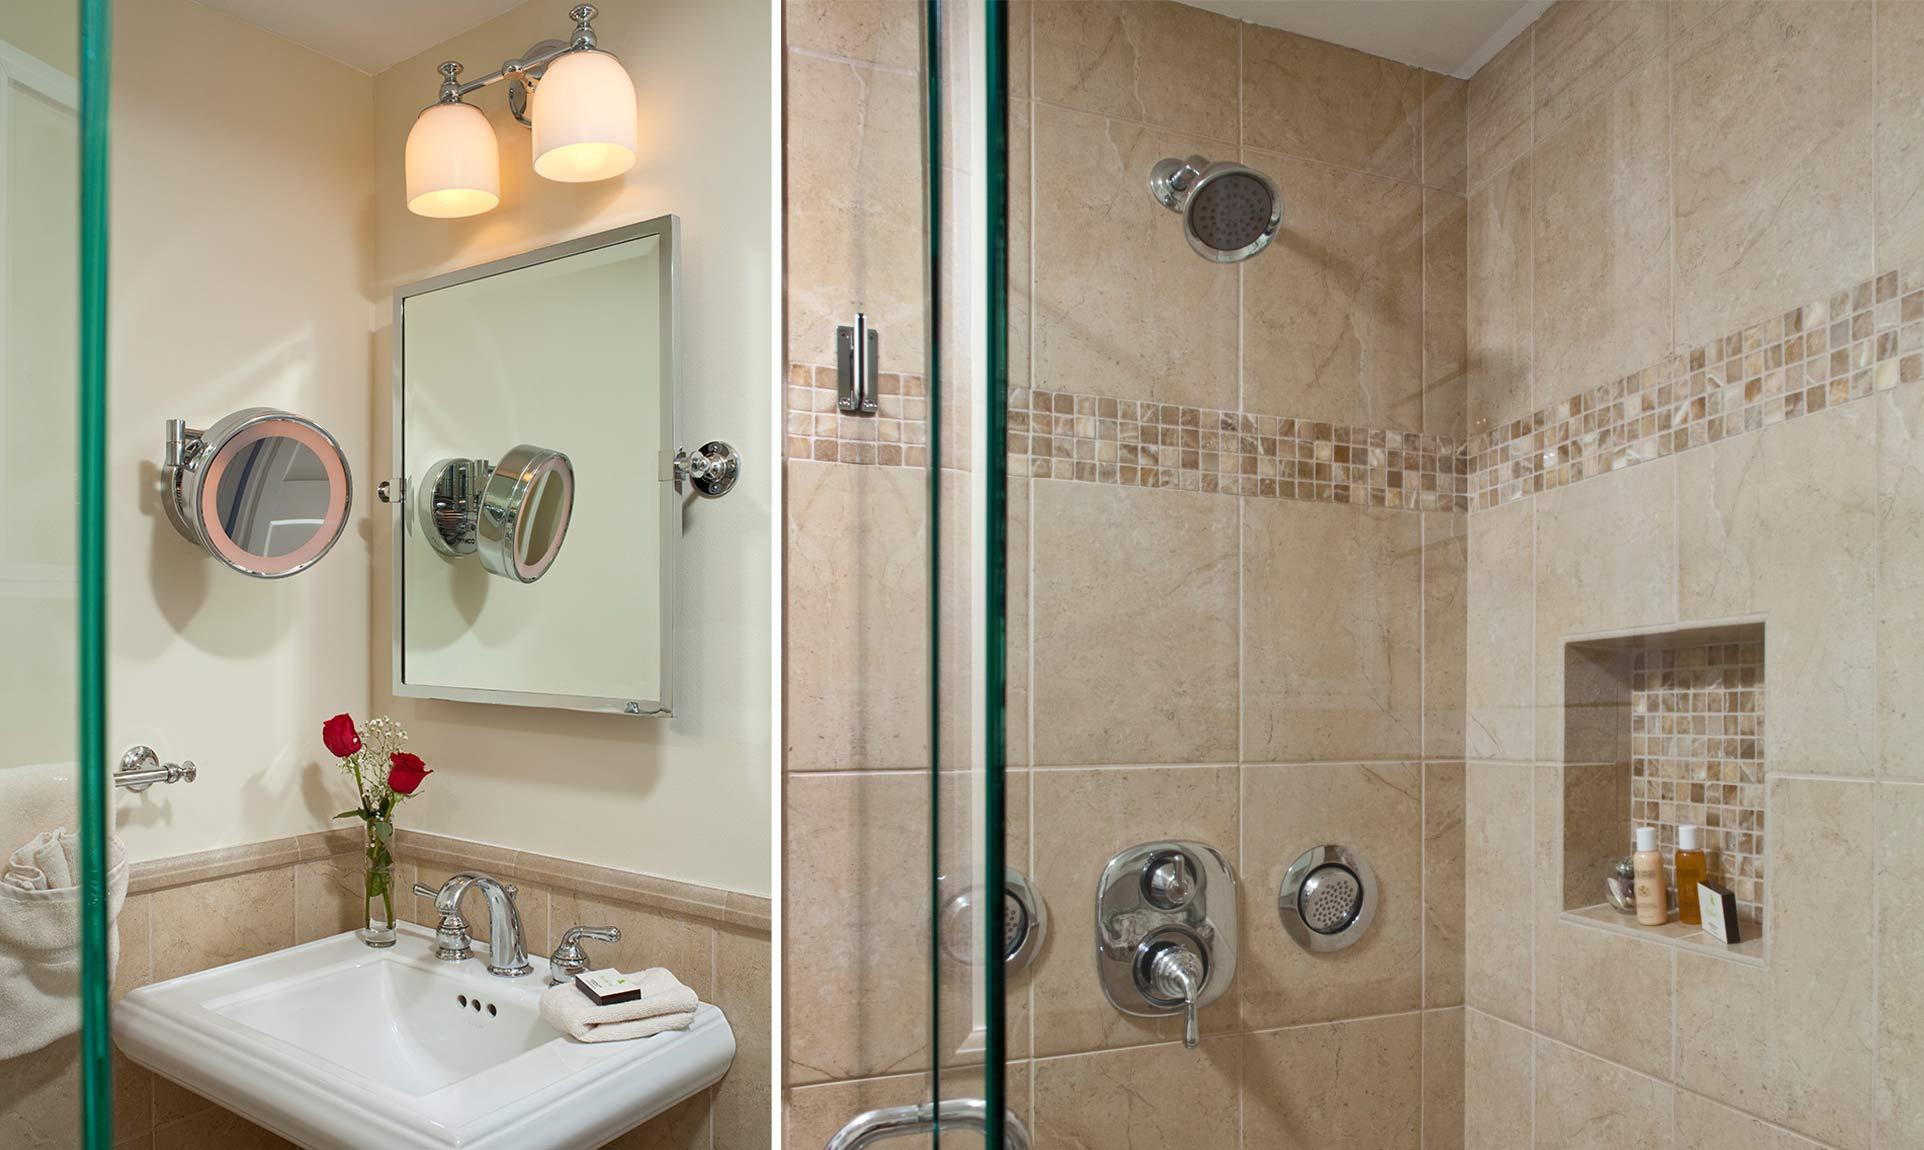 Bathroom sink and tiled walk-in shower with body jets